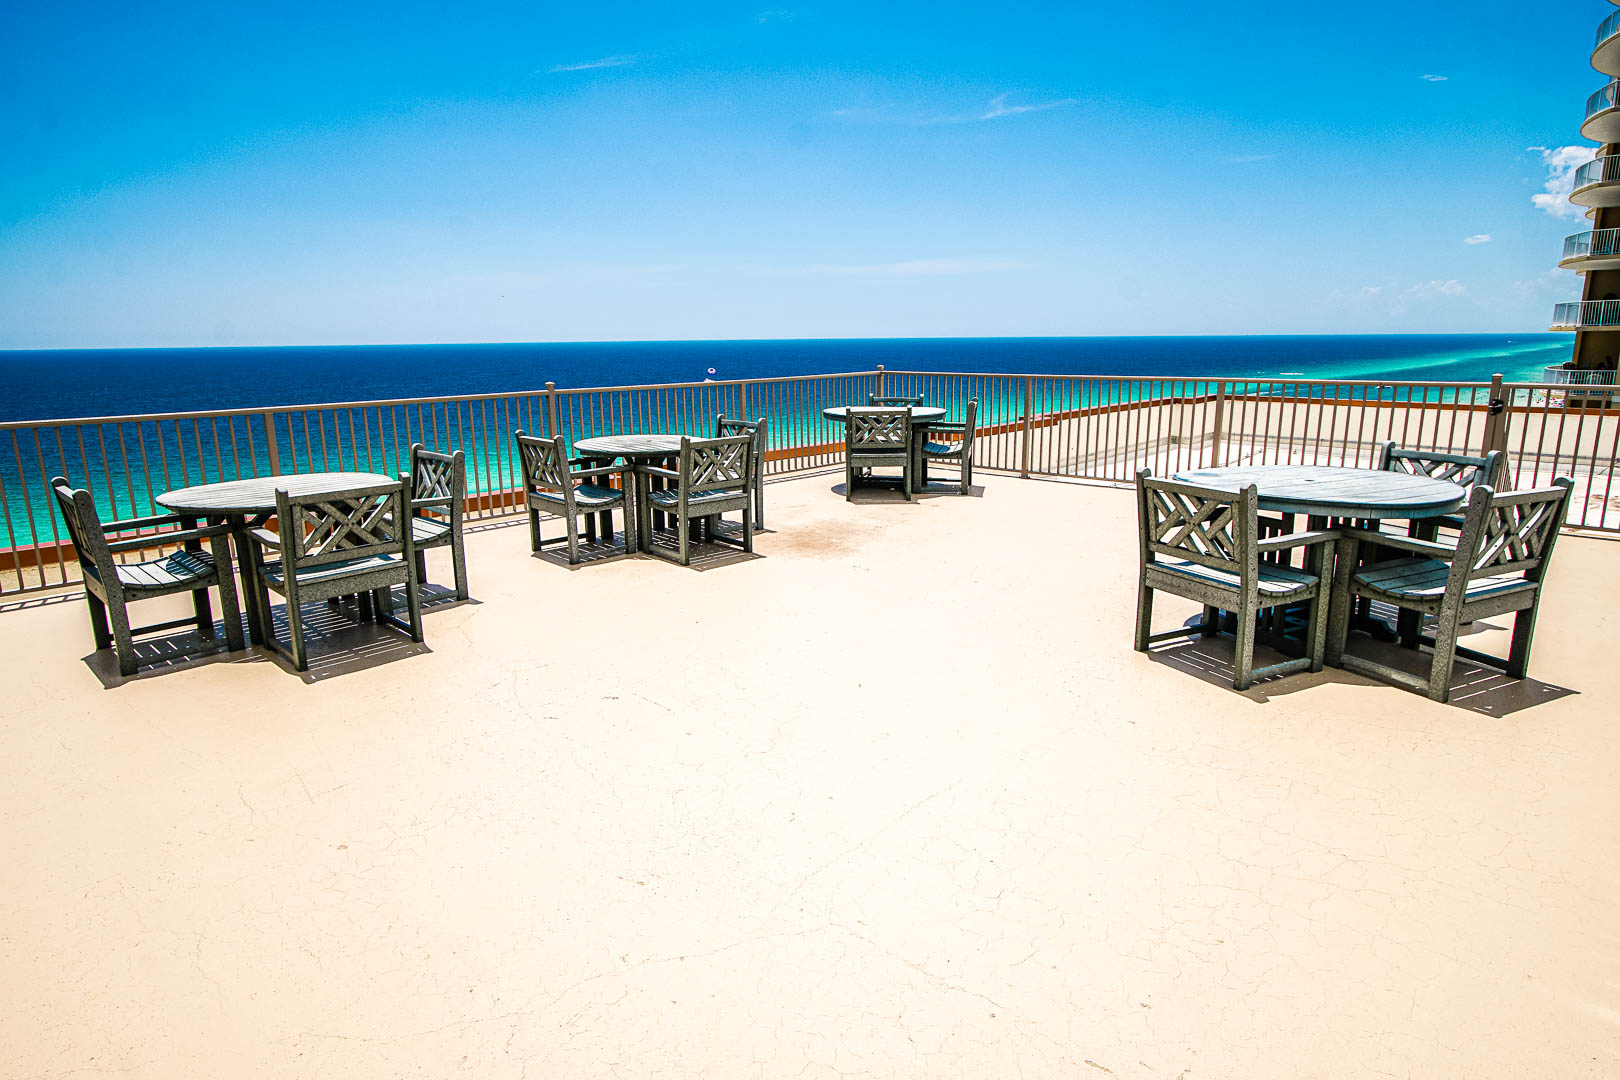 A spacious patio facing the beach at VRI's Landmark Holiday Beach Resort in Panama City, Florida.